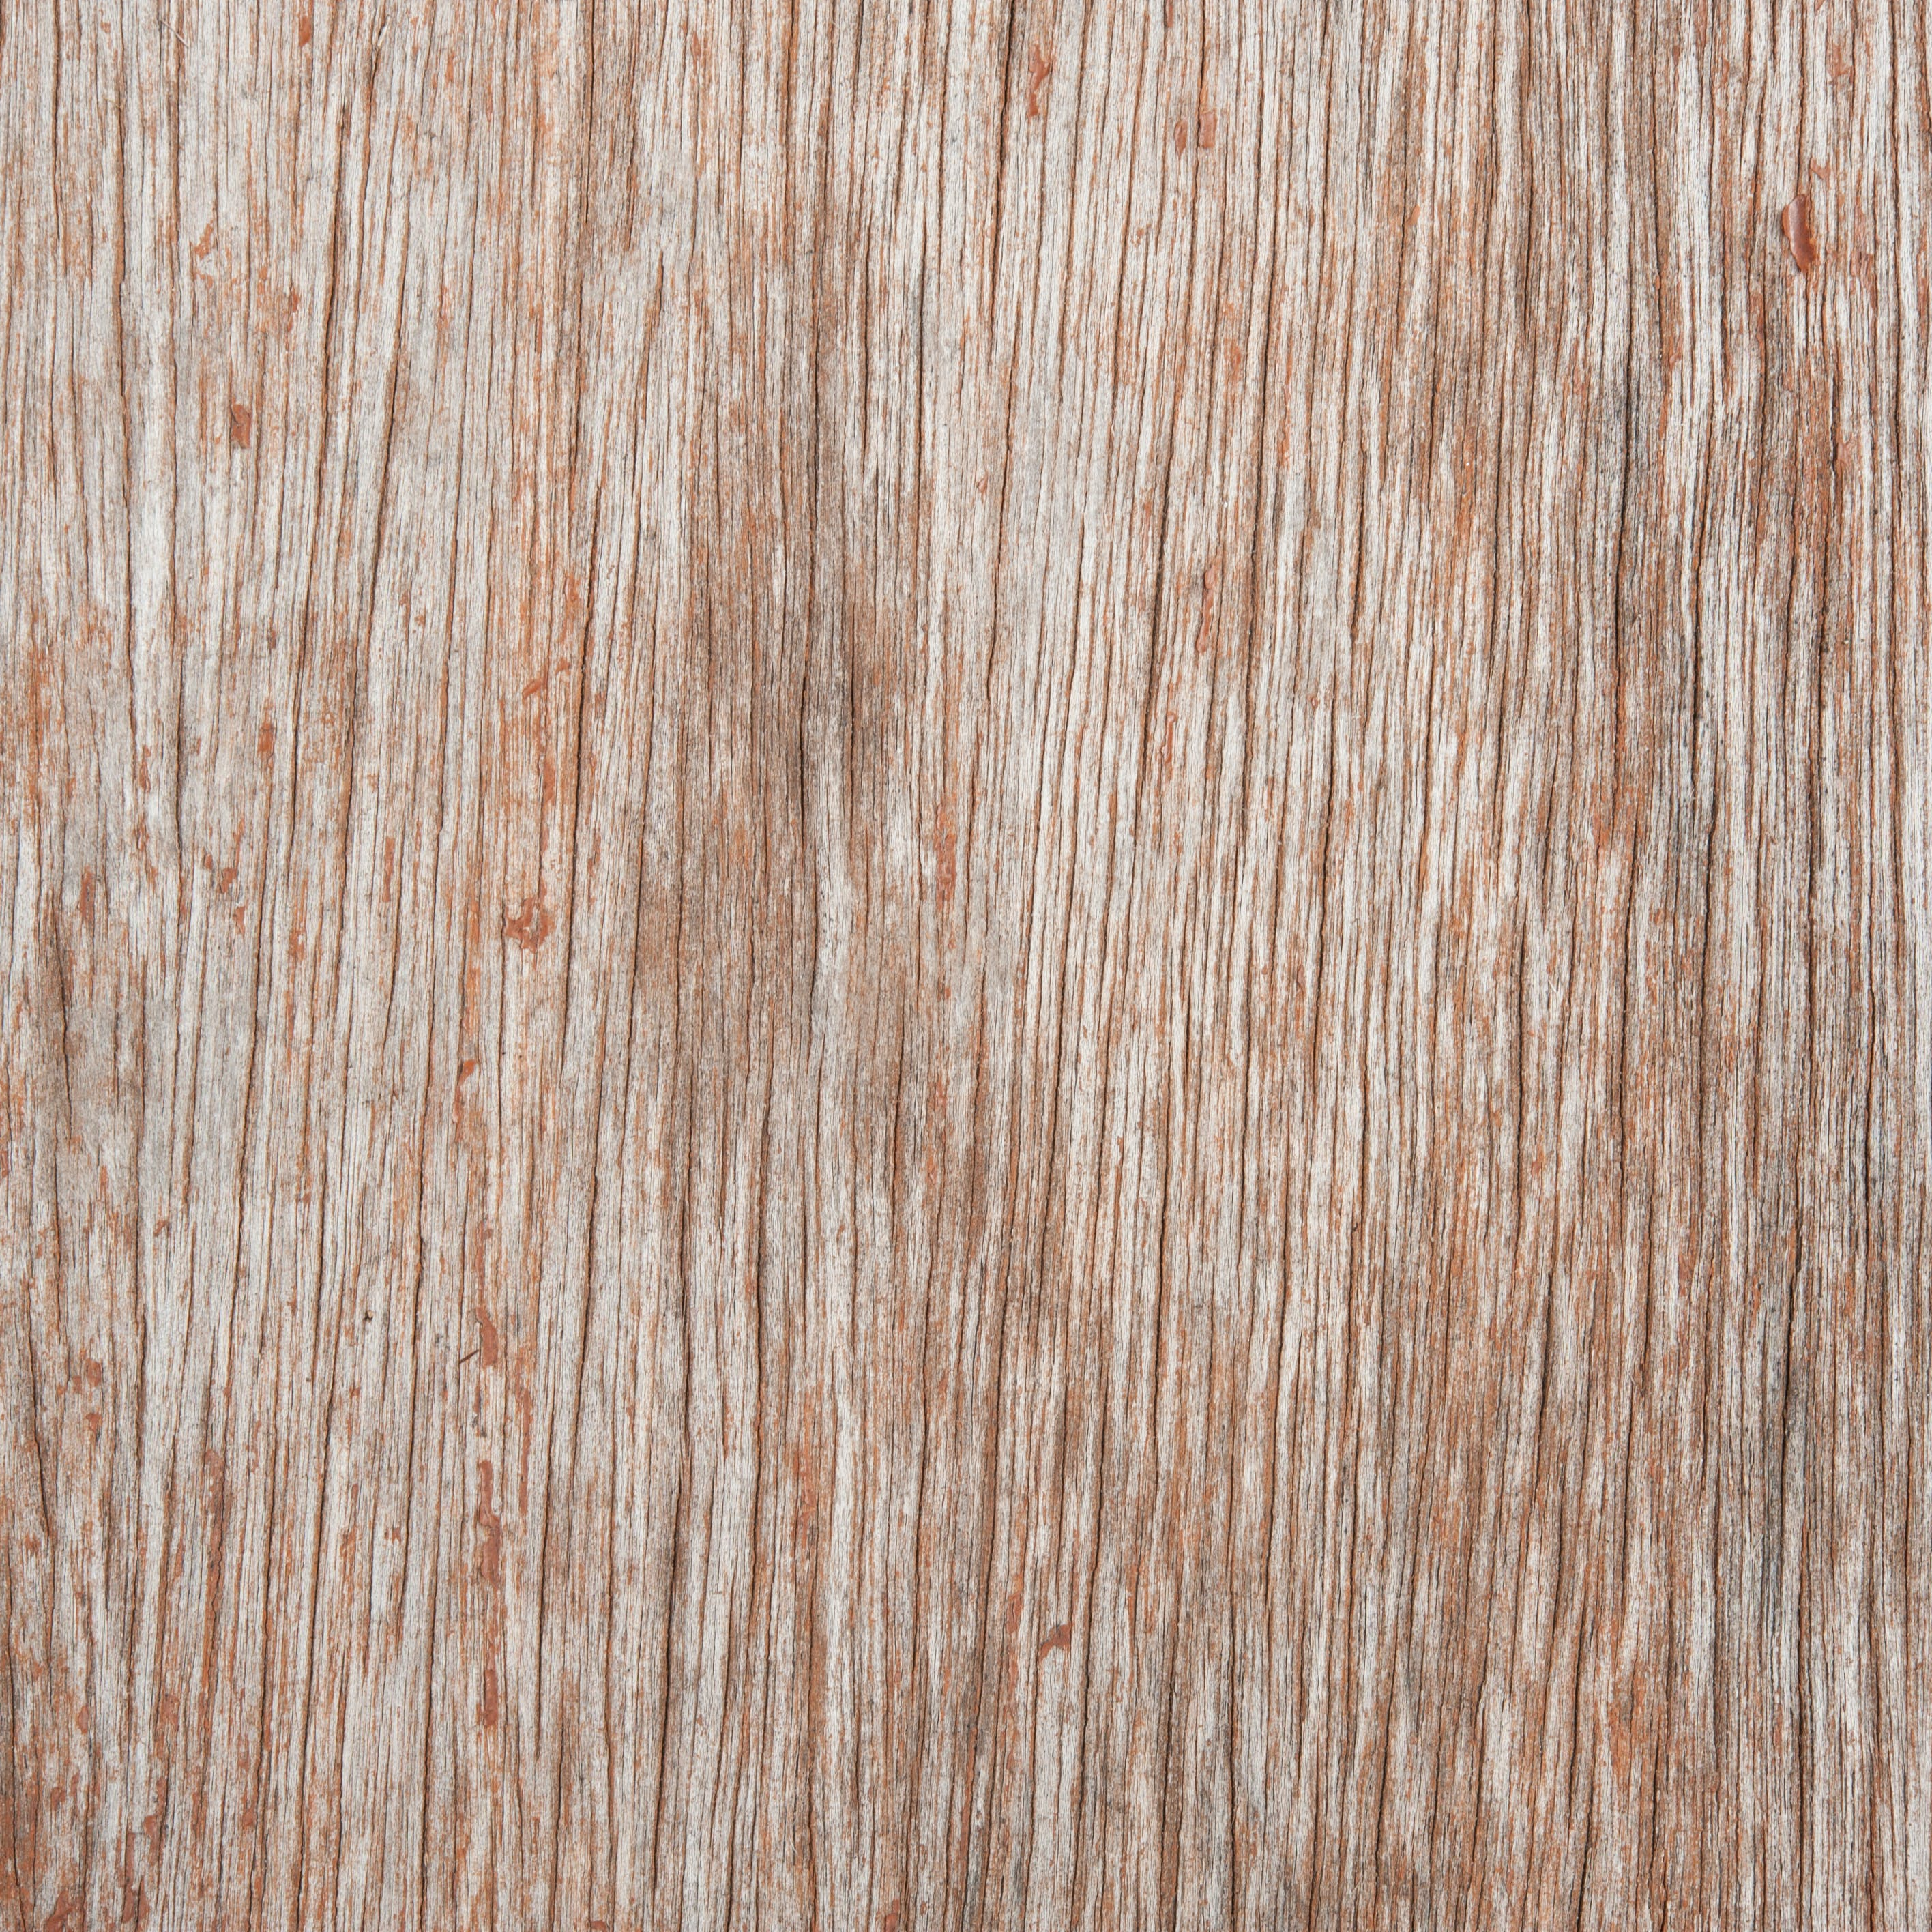 Closeup of a Wooden Surface